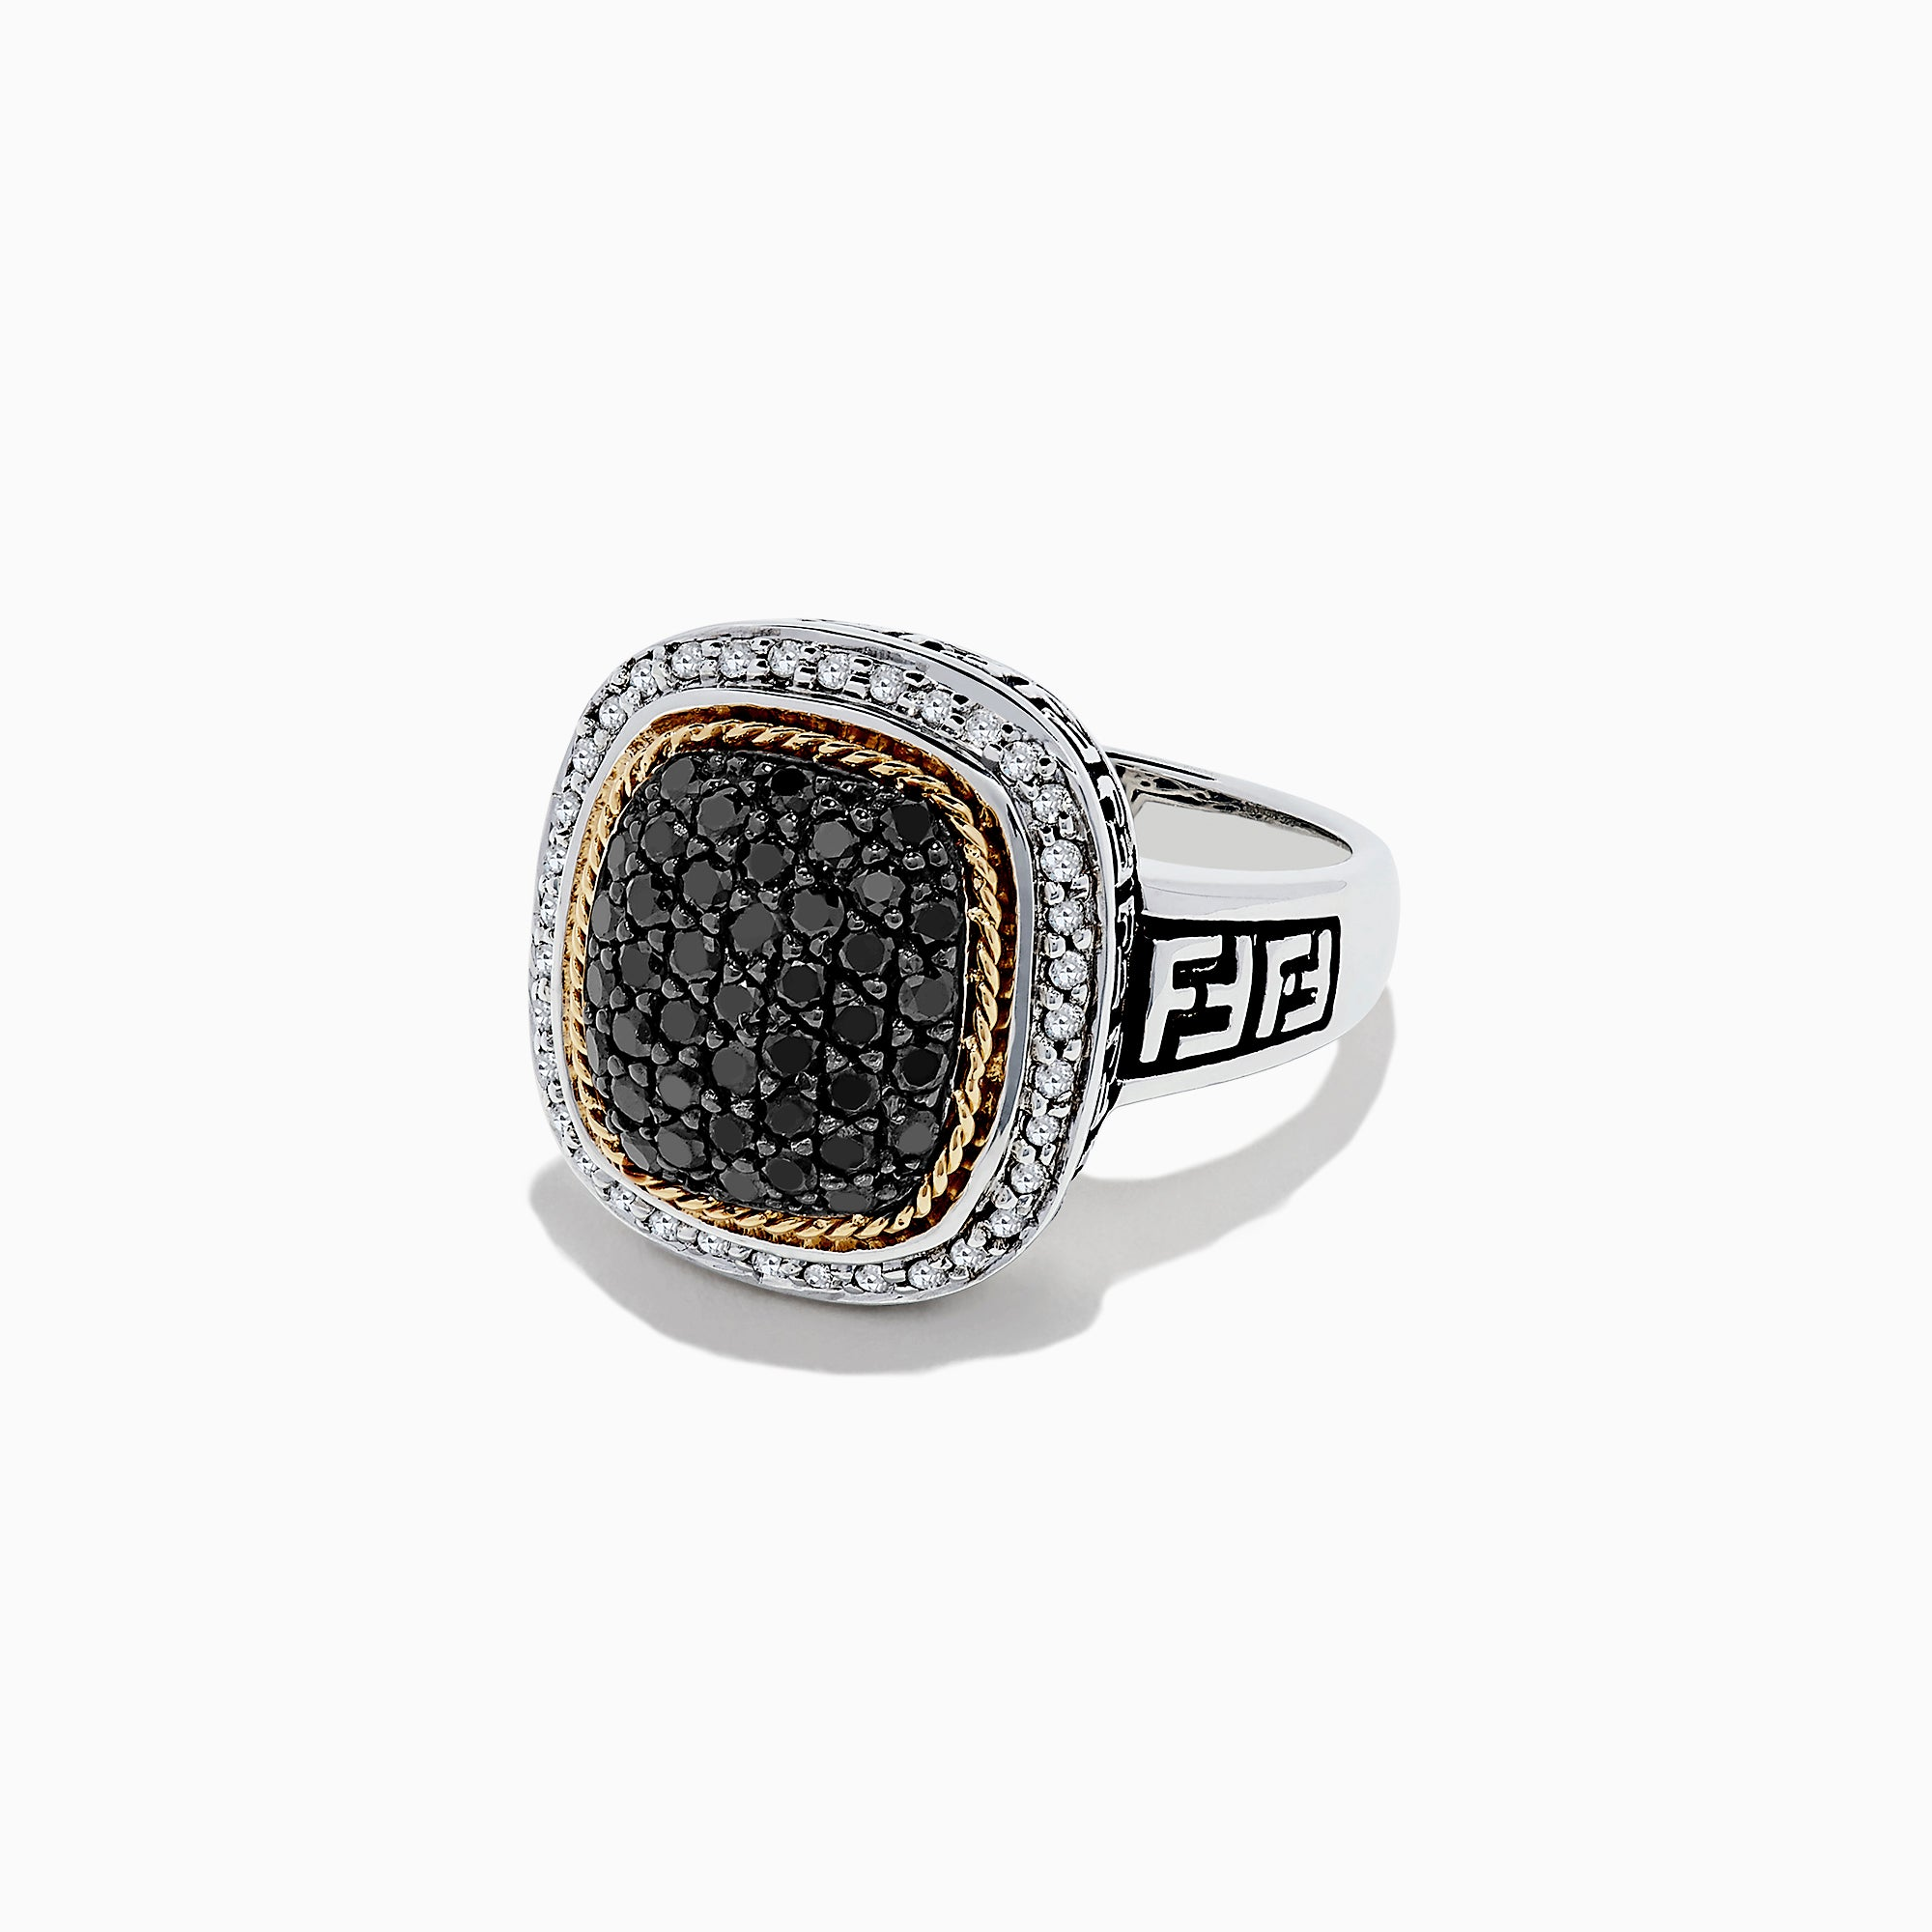 Effy 925 Sterling Silver & 18K Gold Black and White Diamond Ring, 1.00 TCW